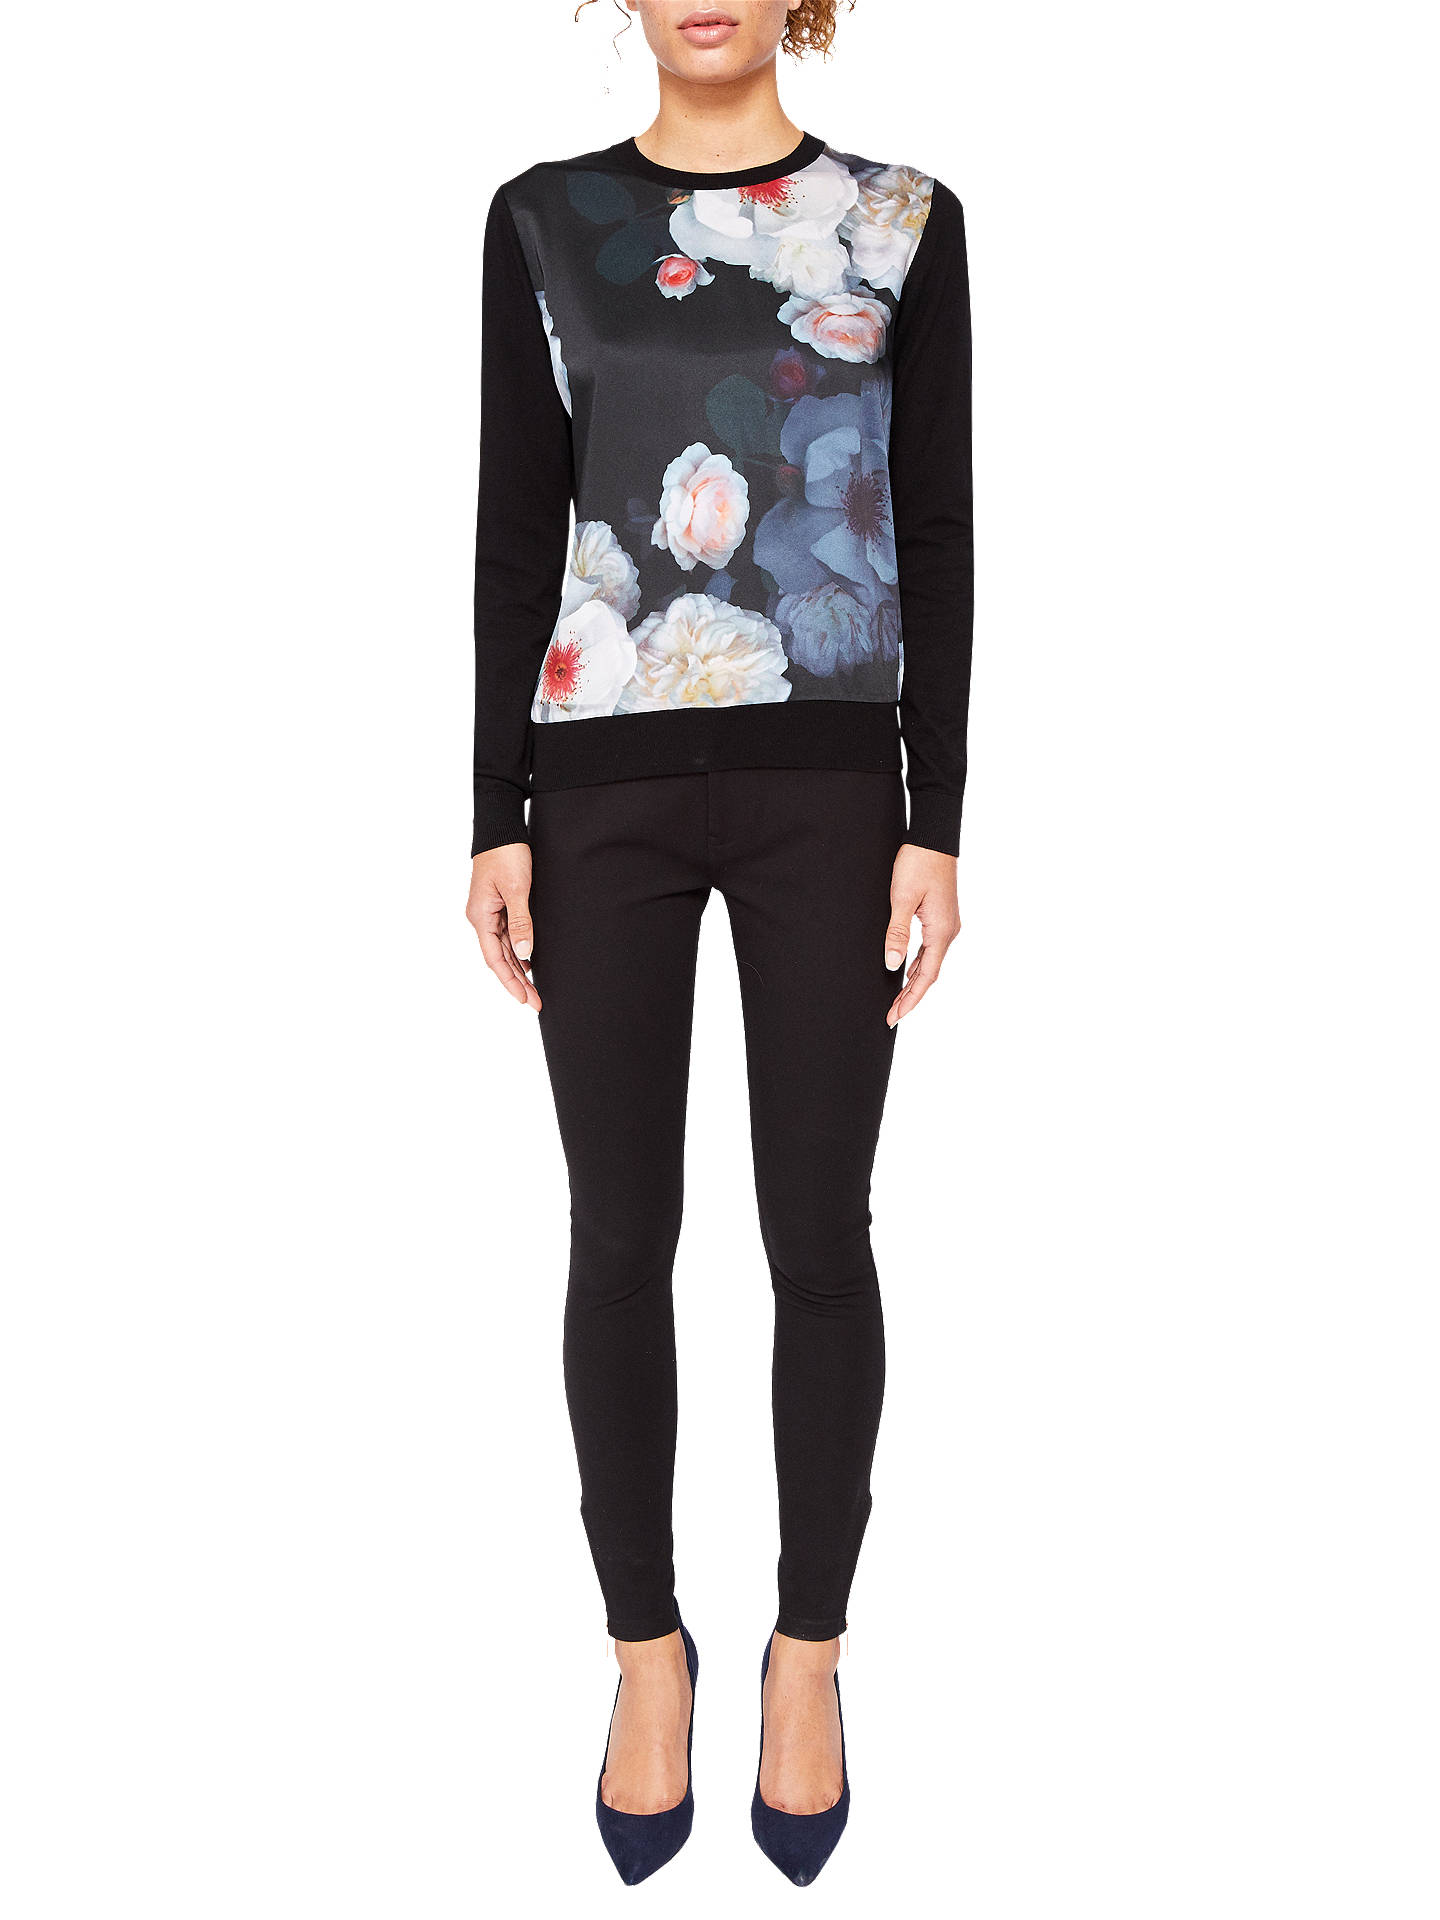 BuyTed Baker Holiee Chelsea Print Woven Jumper, Black/Multi, 6 Online at johnlewis.com